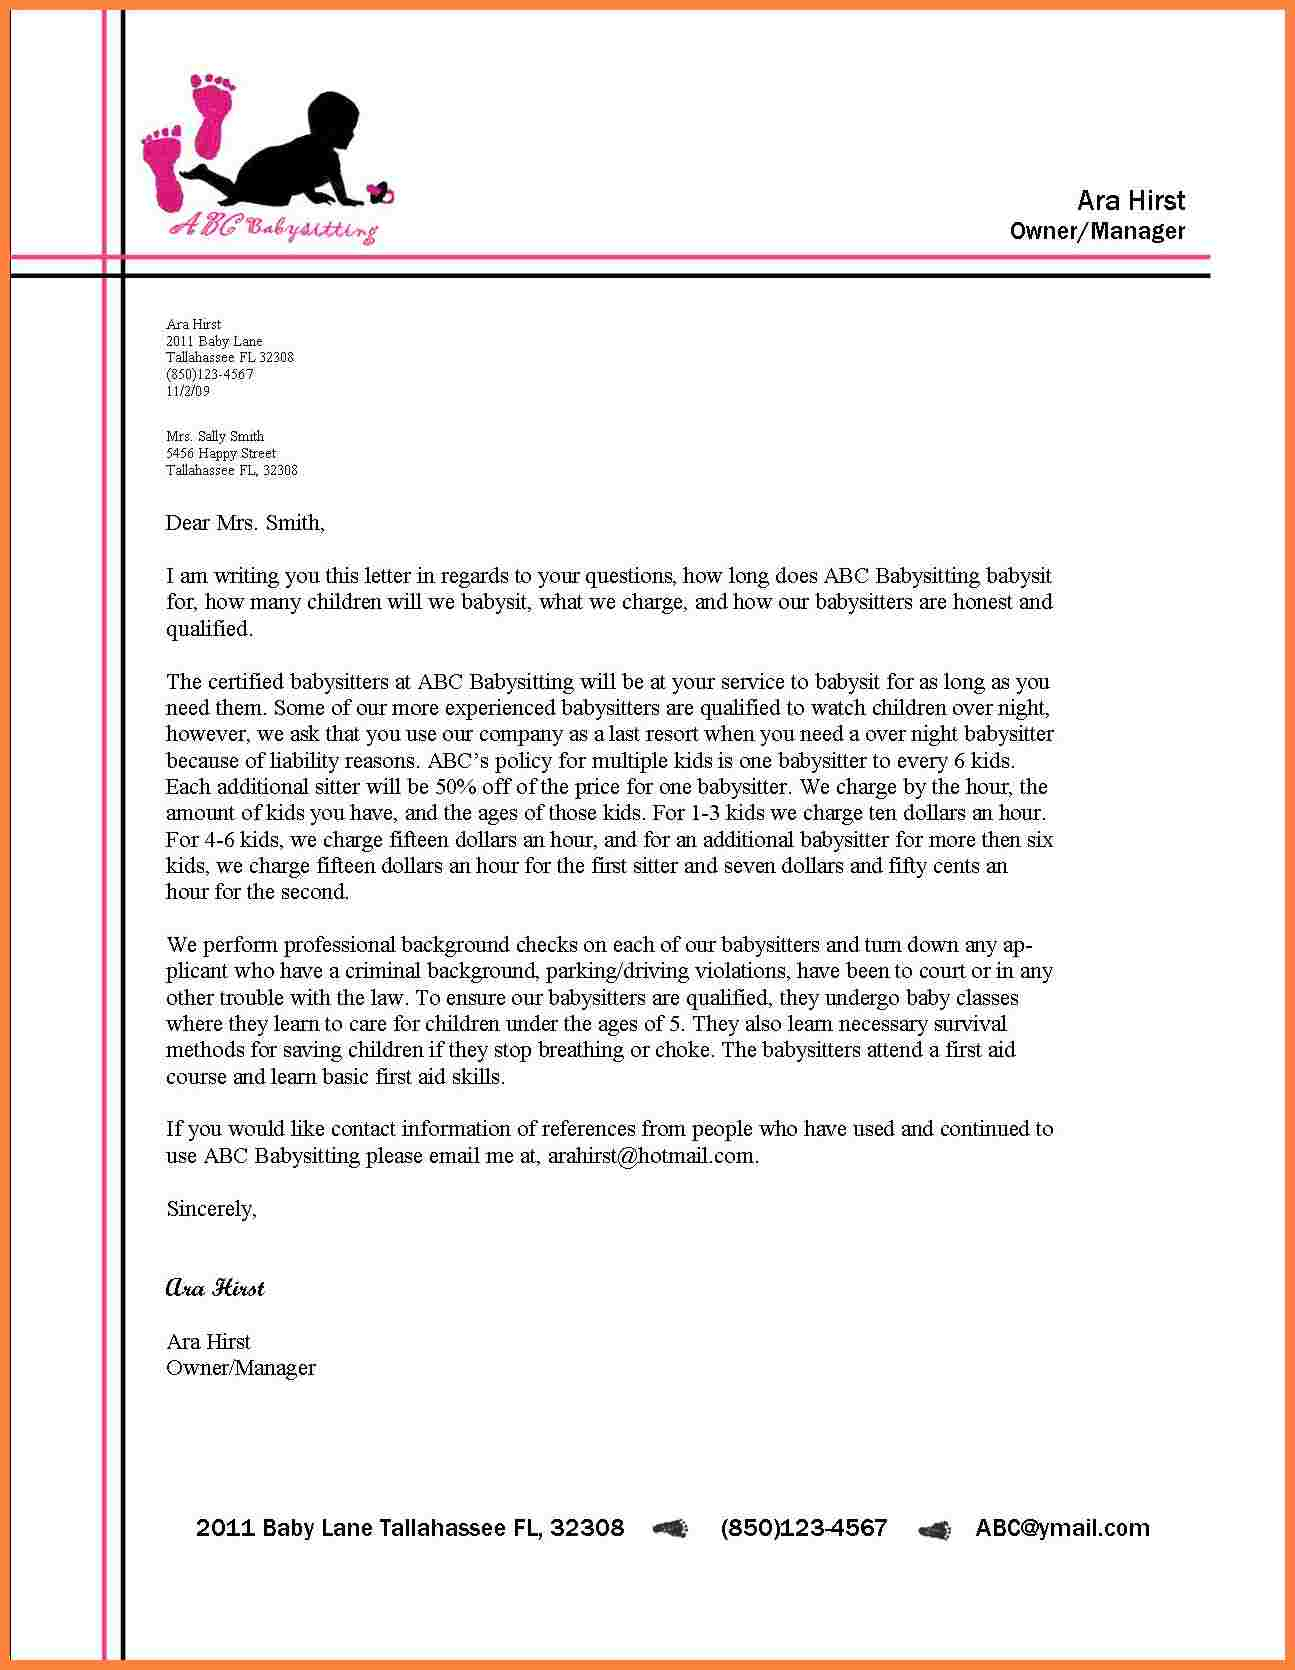 Examples Of Letterheads For Business Letters Scrumps